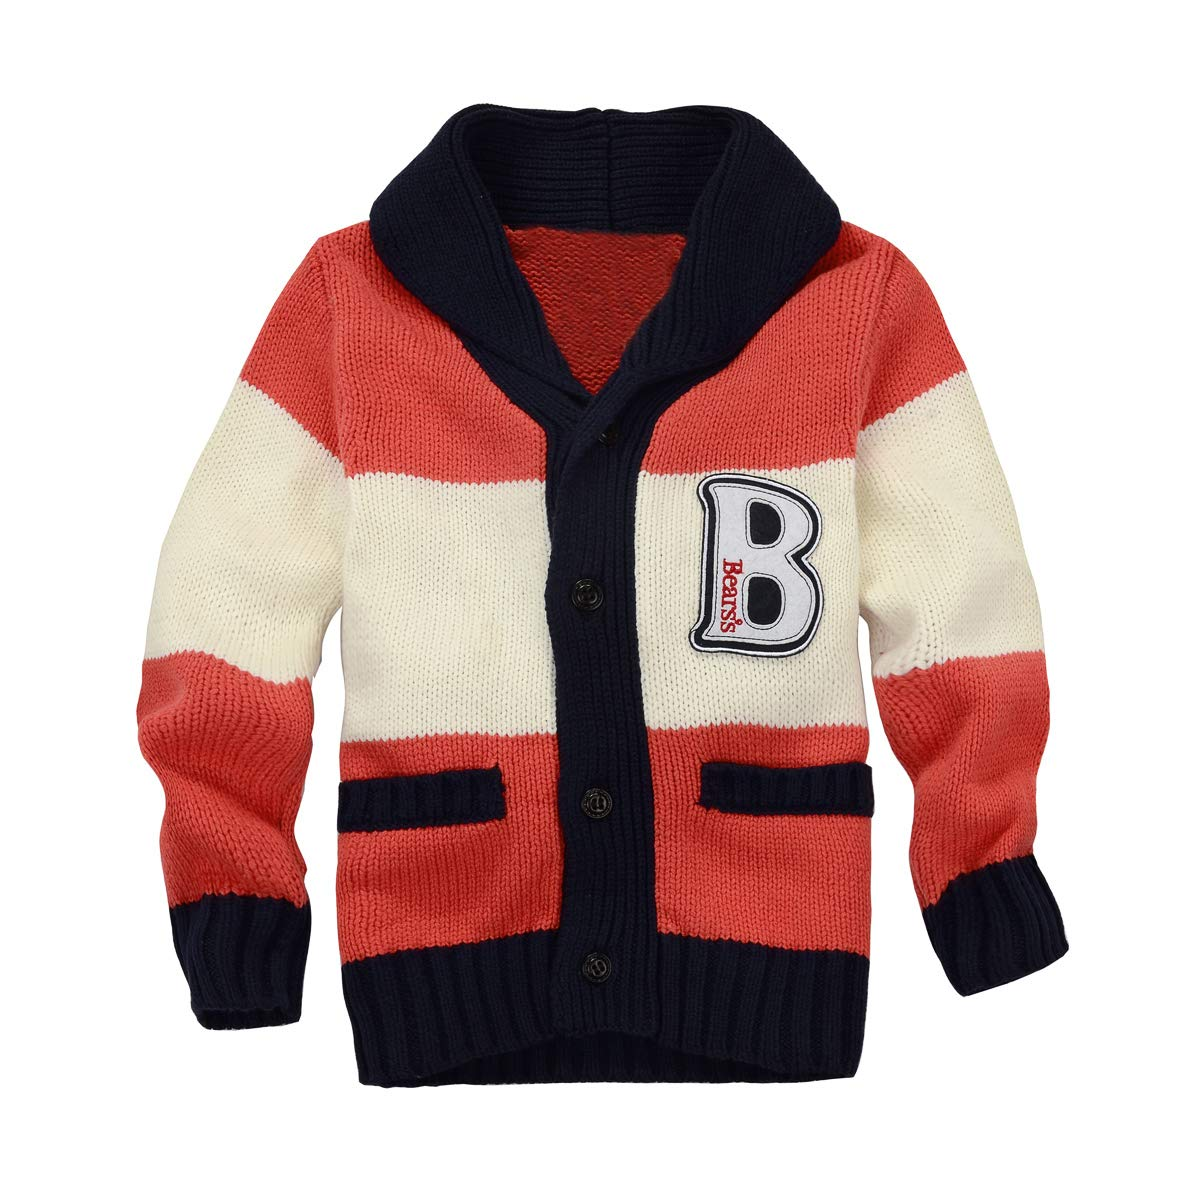 3cb58462e Zebra Fish Toddler Boys Sweaters Boys Button Up Sweater Long Sleeve ...